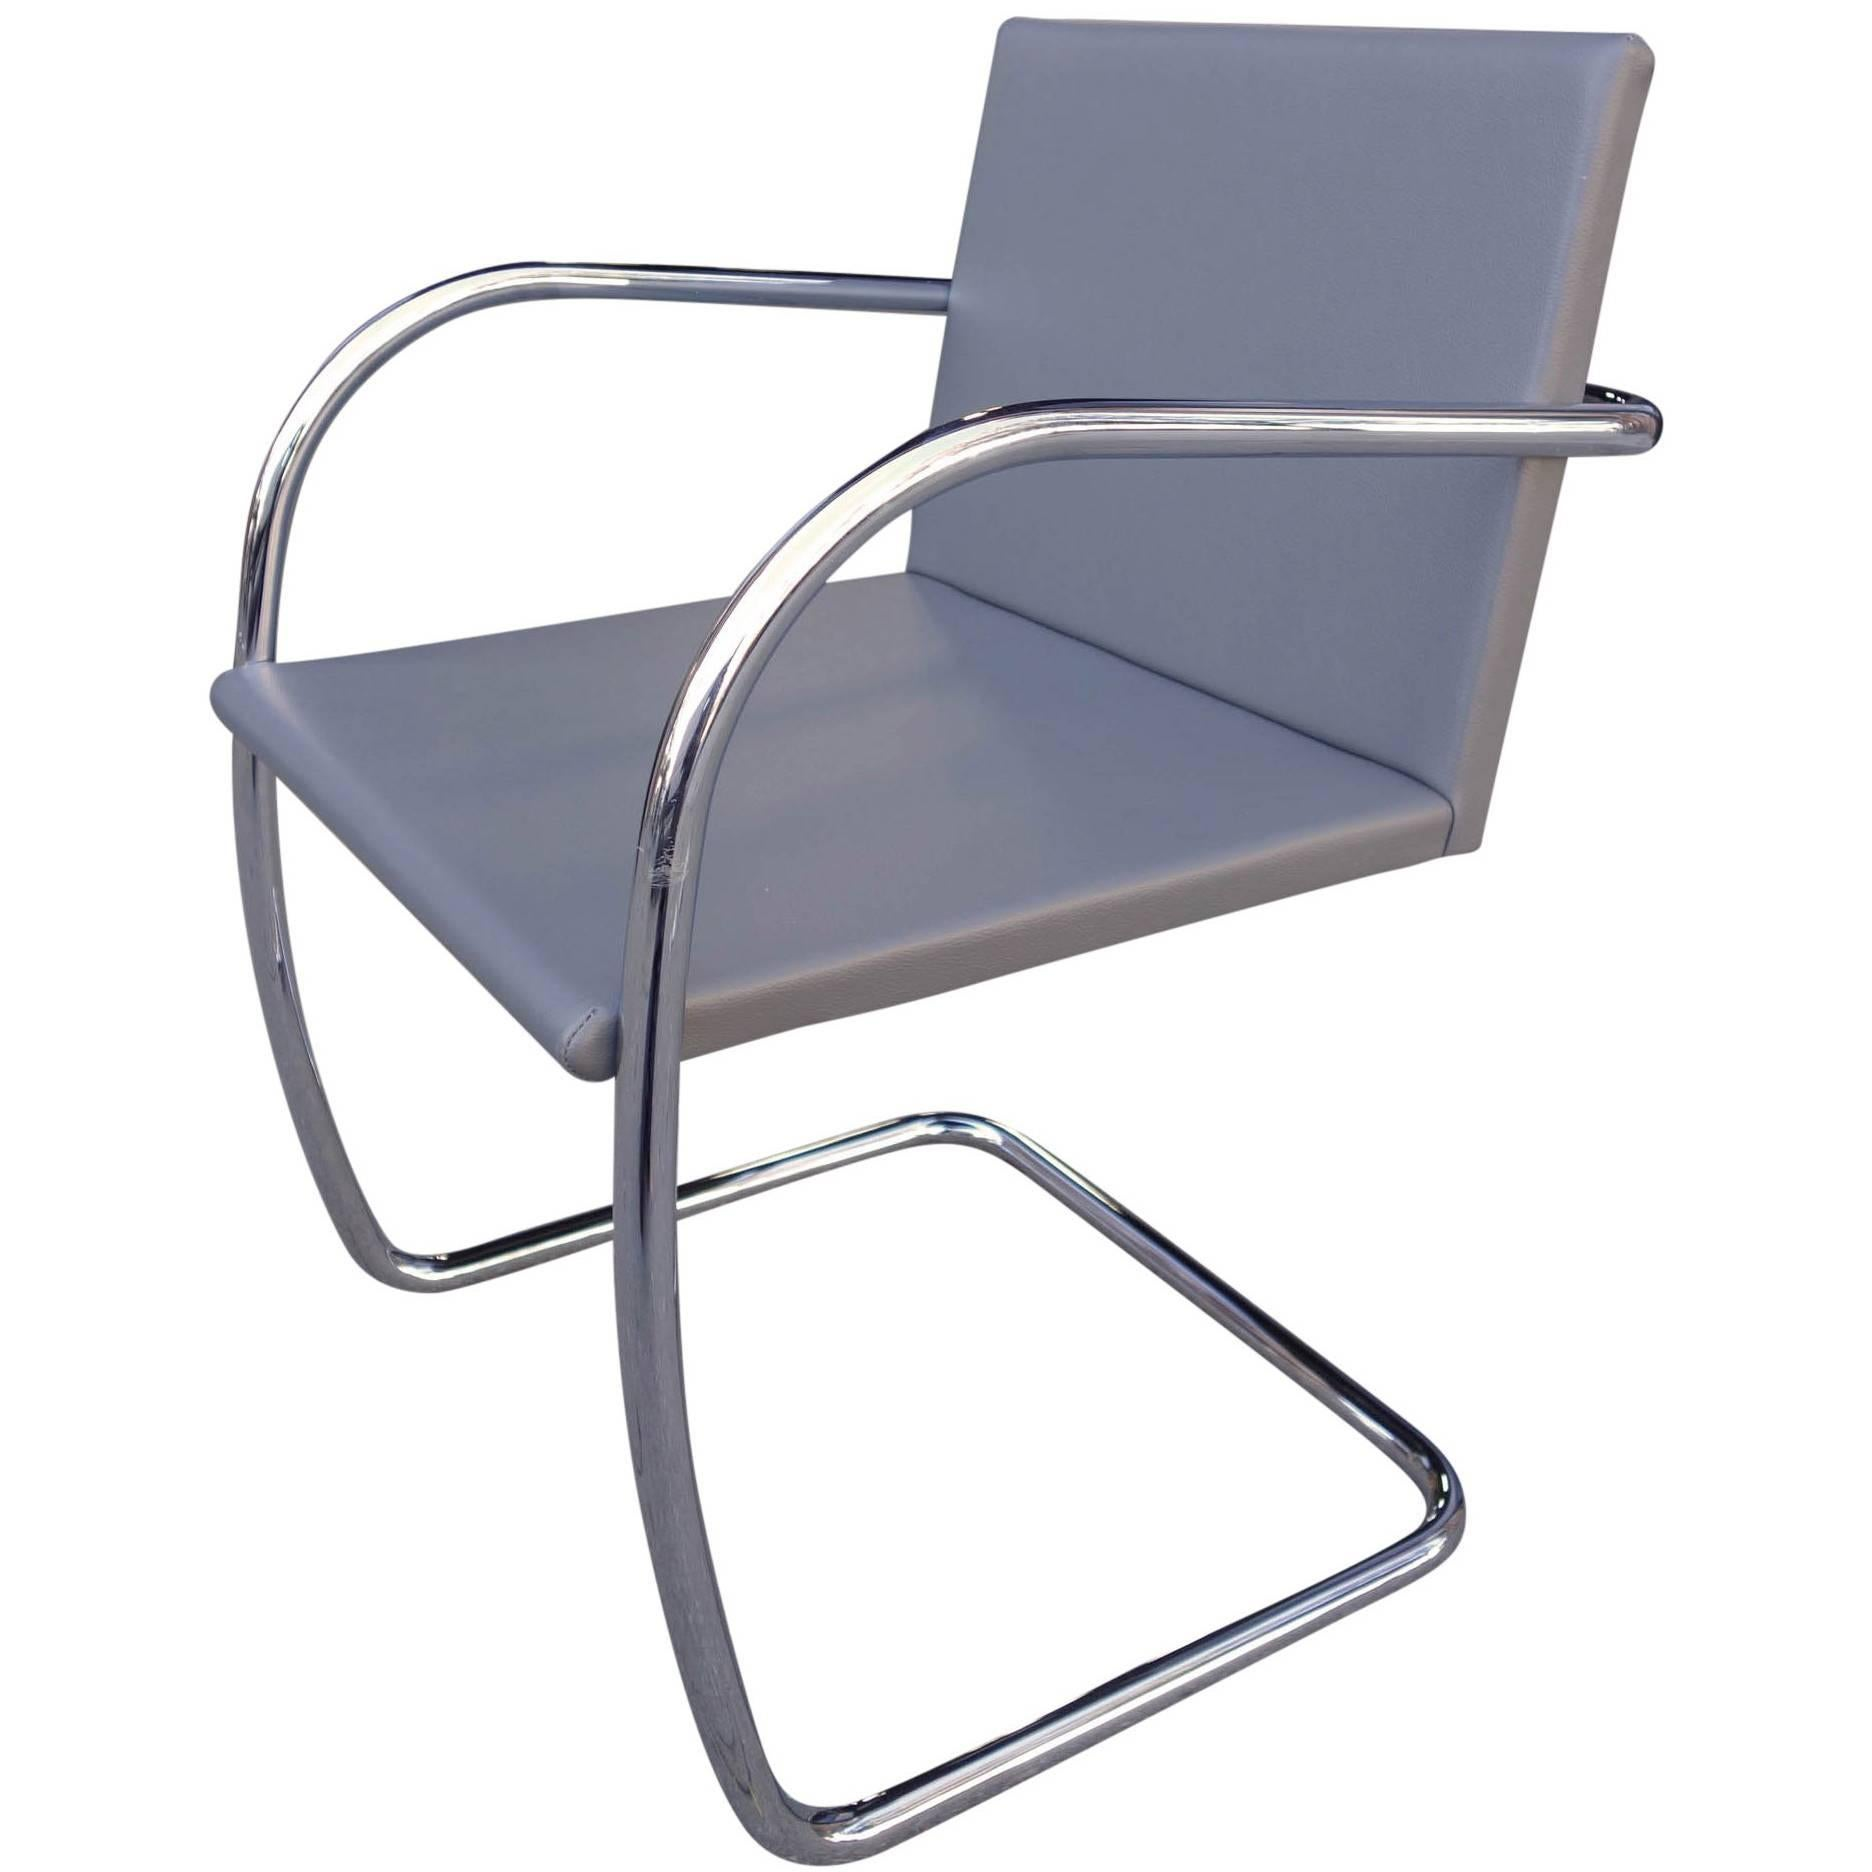 Midcentury Brno Chairs in Leather by Mies van der Rohe for Knoll